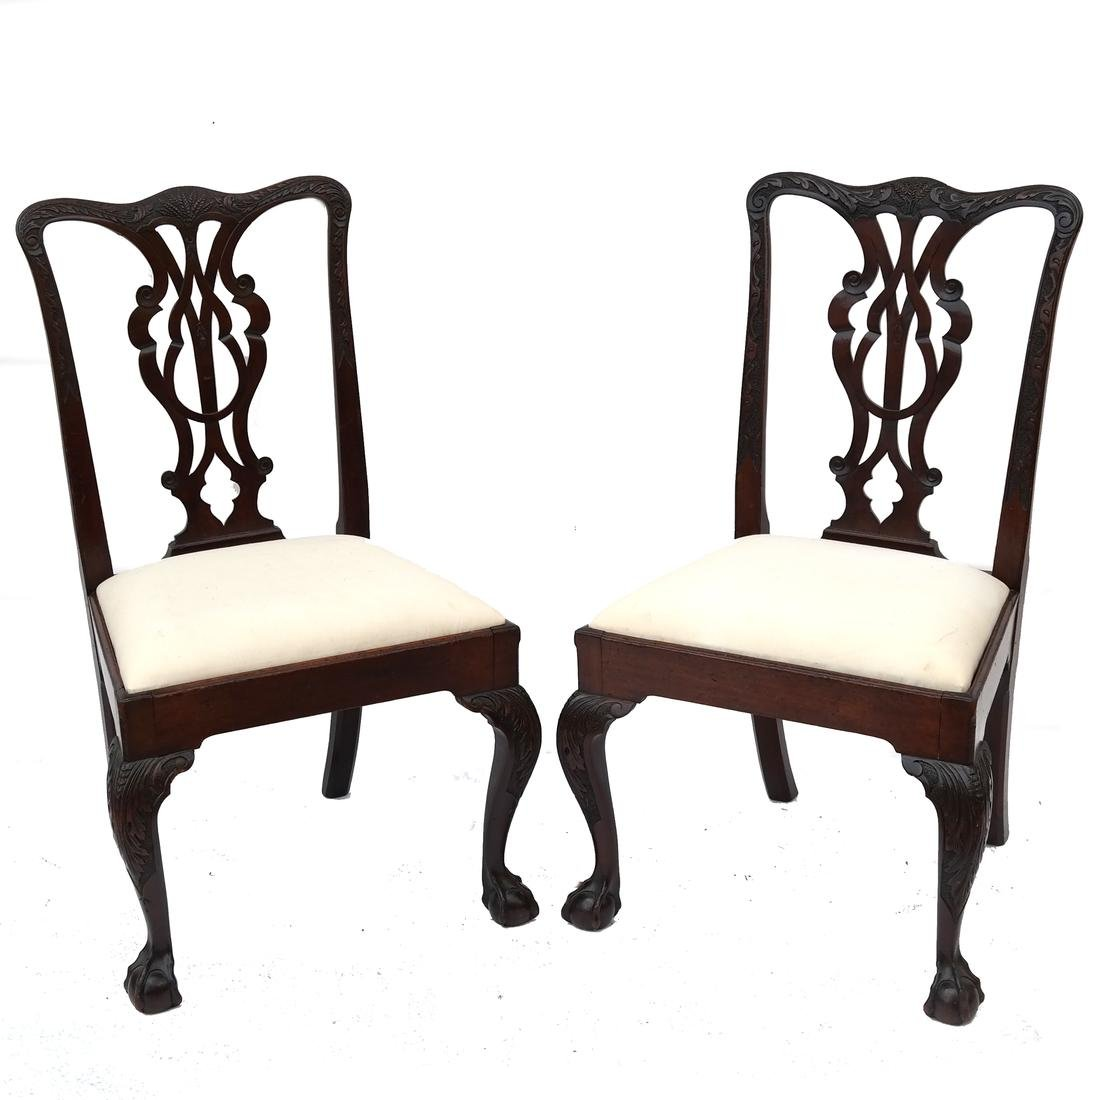 Set of 4 English Side Chairs Edwards & Roberts 18th C.